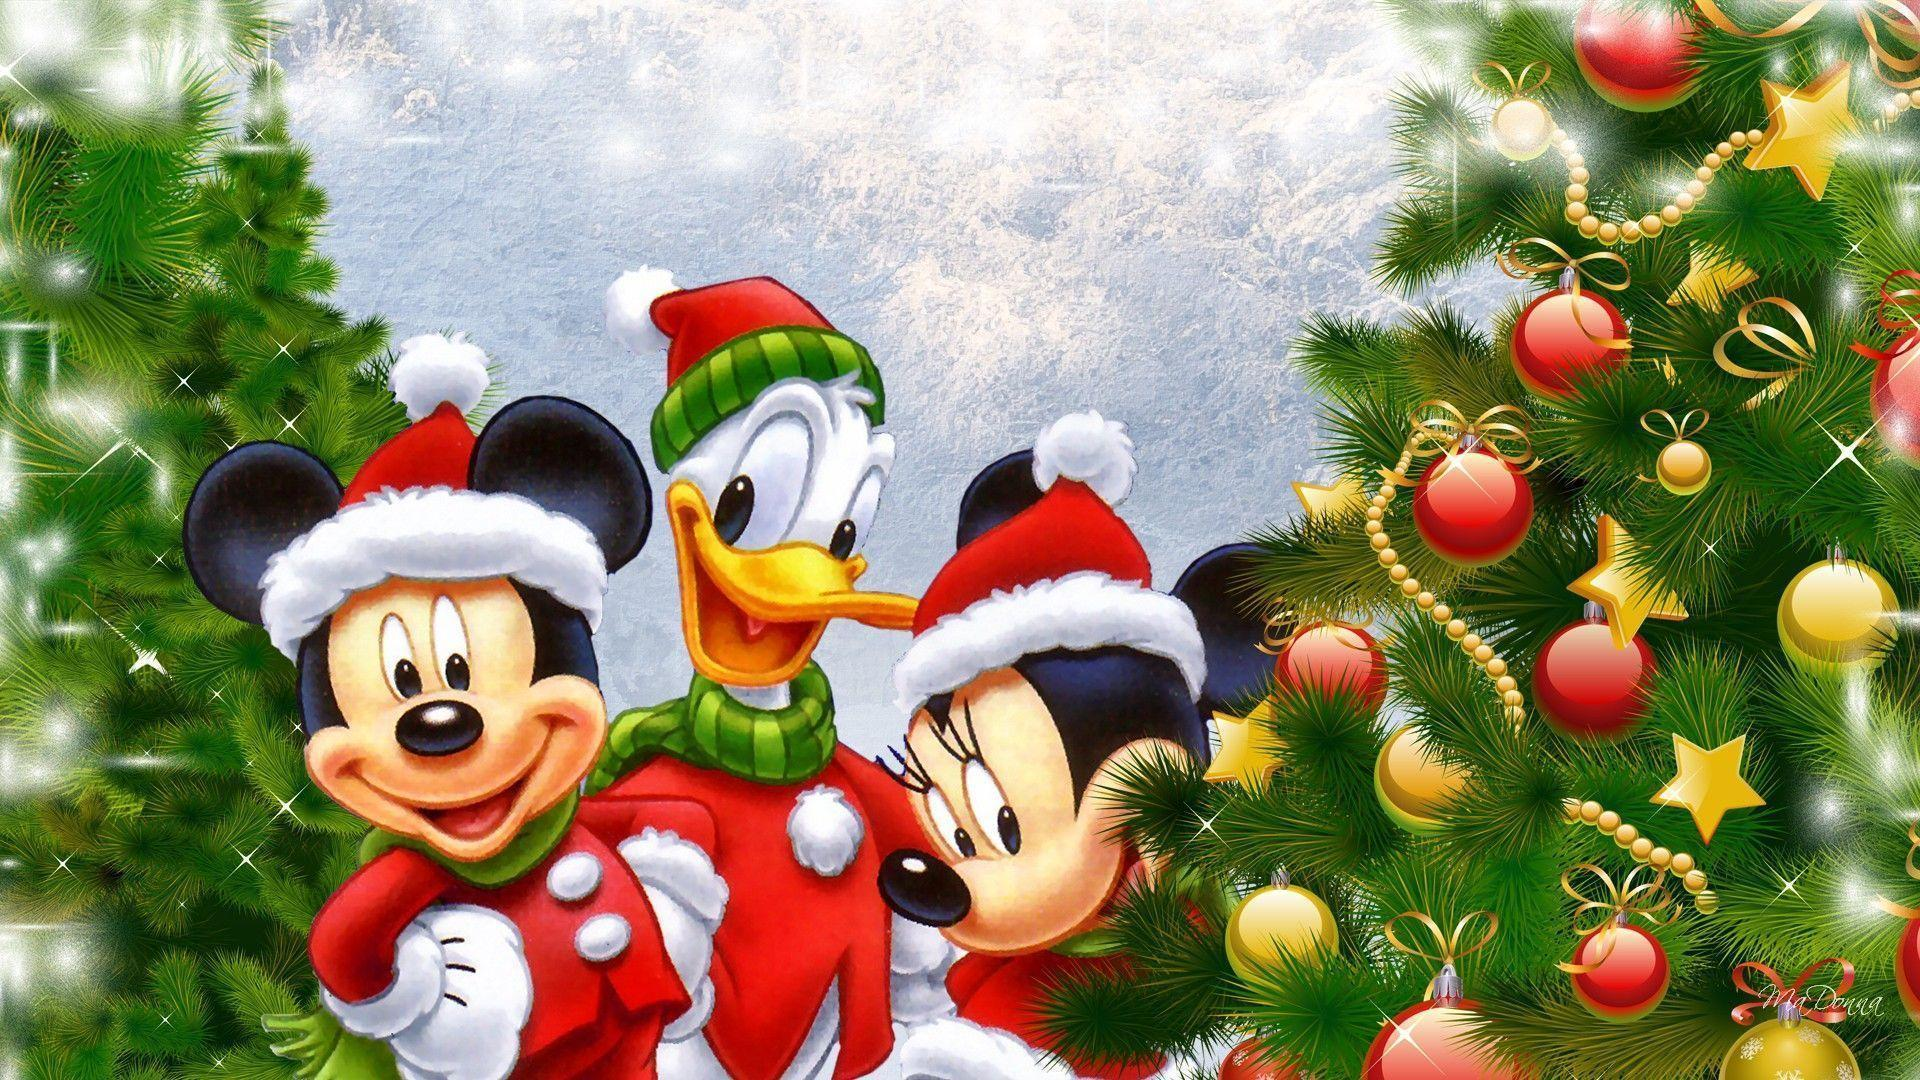 Disney wallpapers at Christmas time all in HD from Donald to mickey